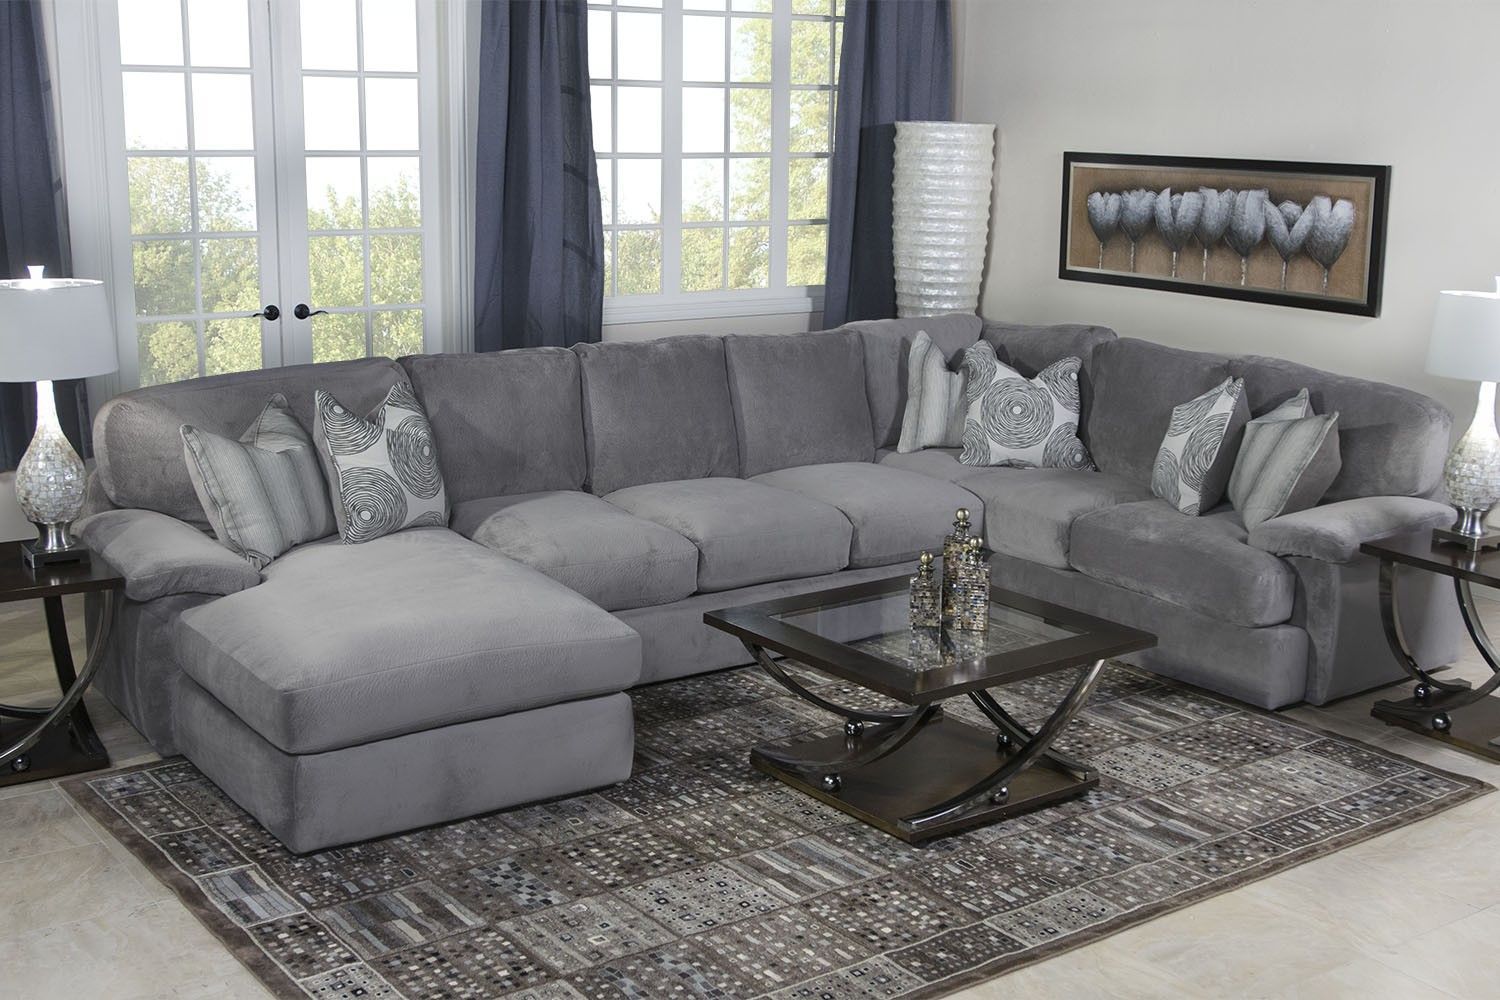 Key west sectional living room in gray living room mor for Sectional living room ideas